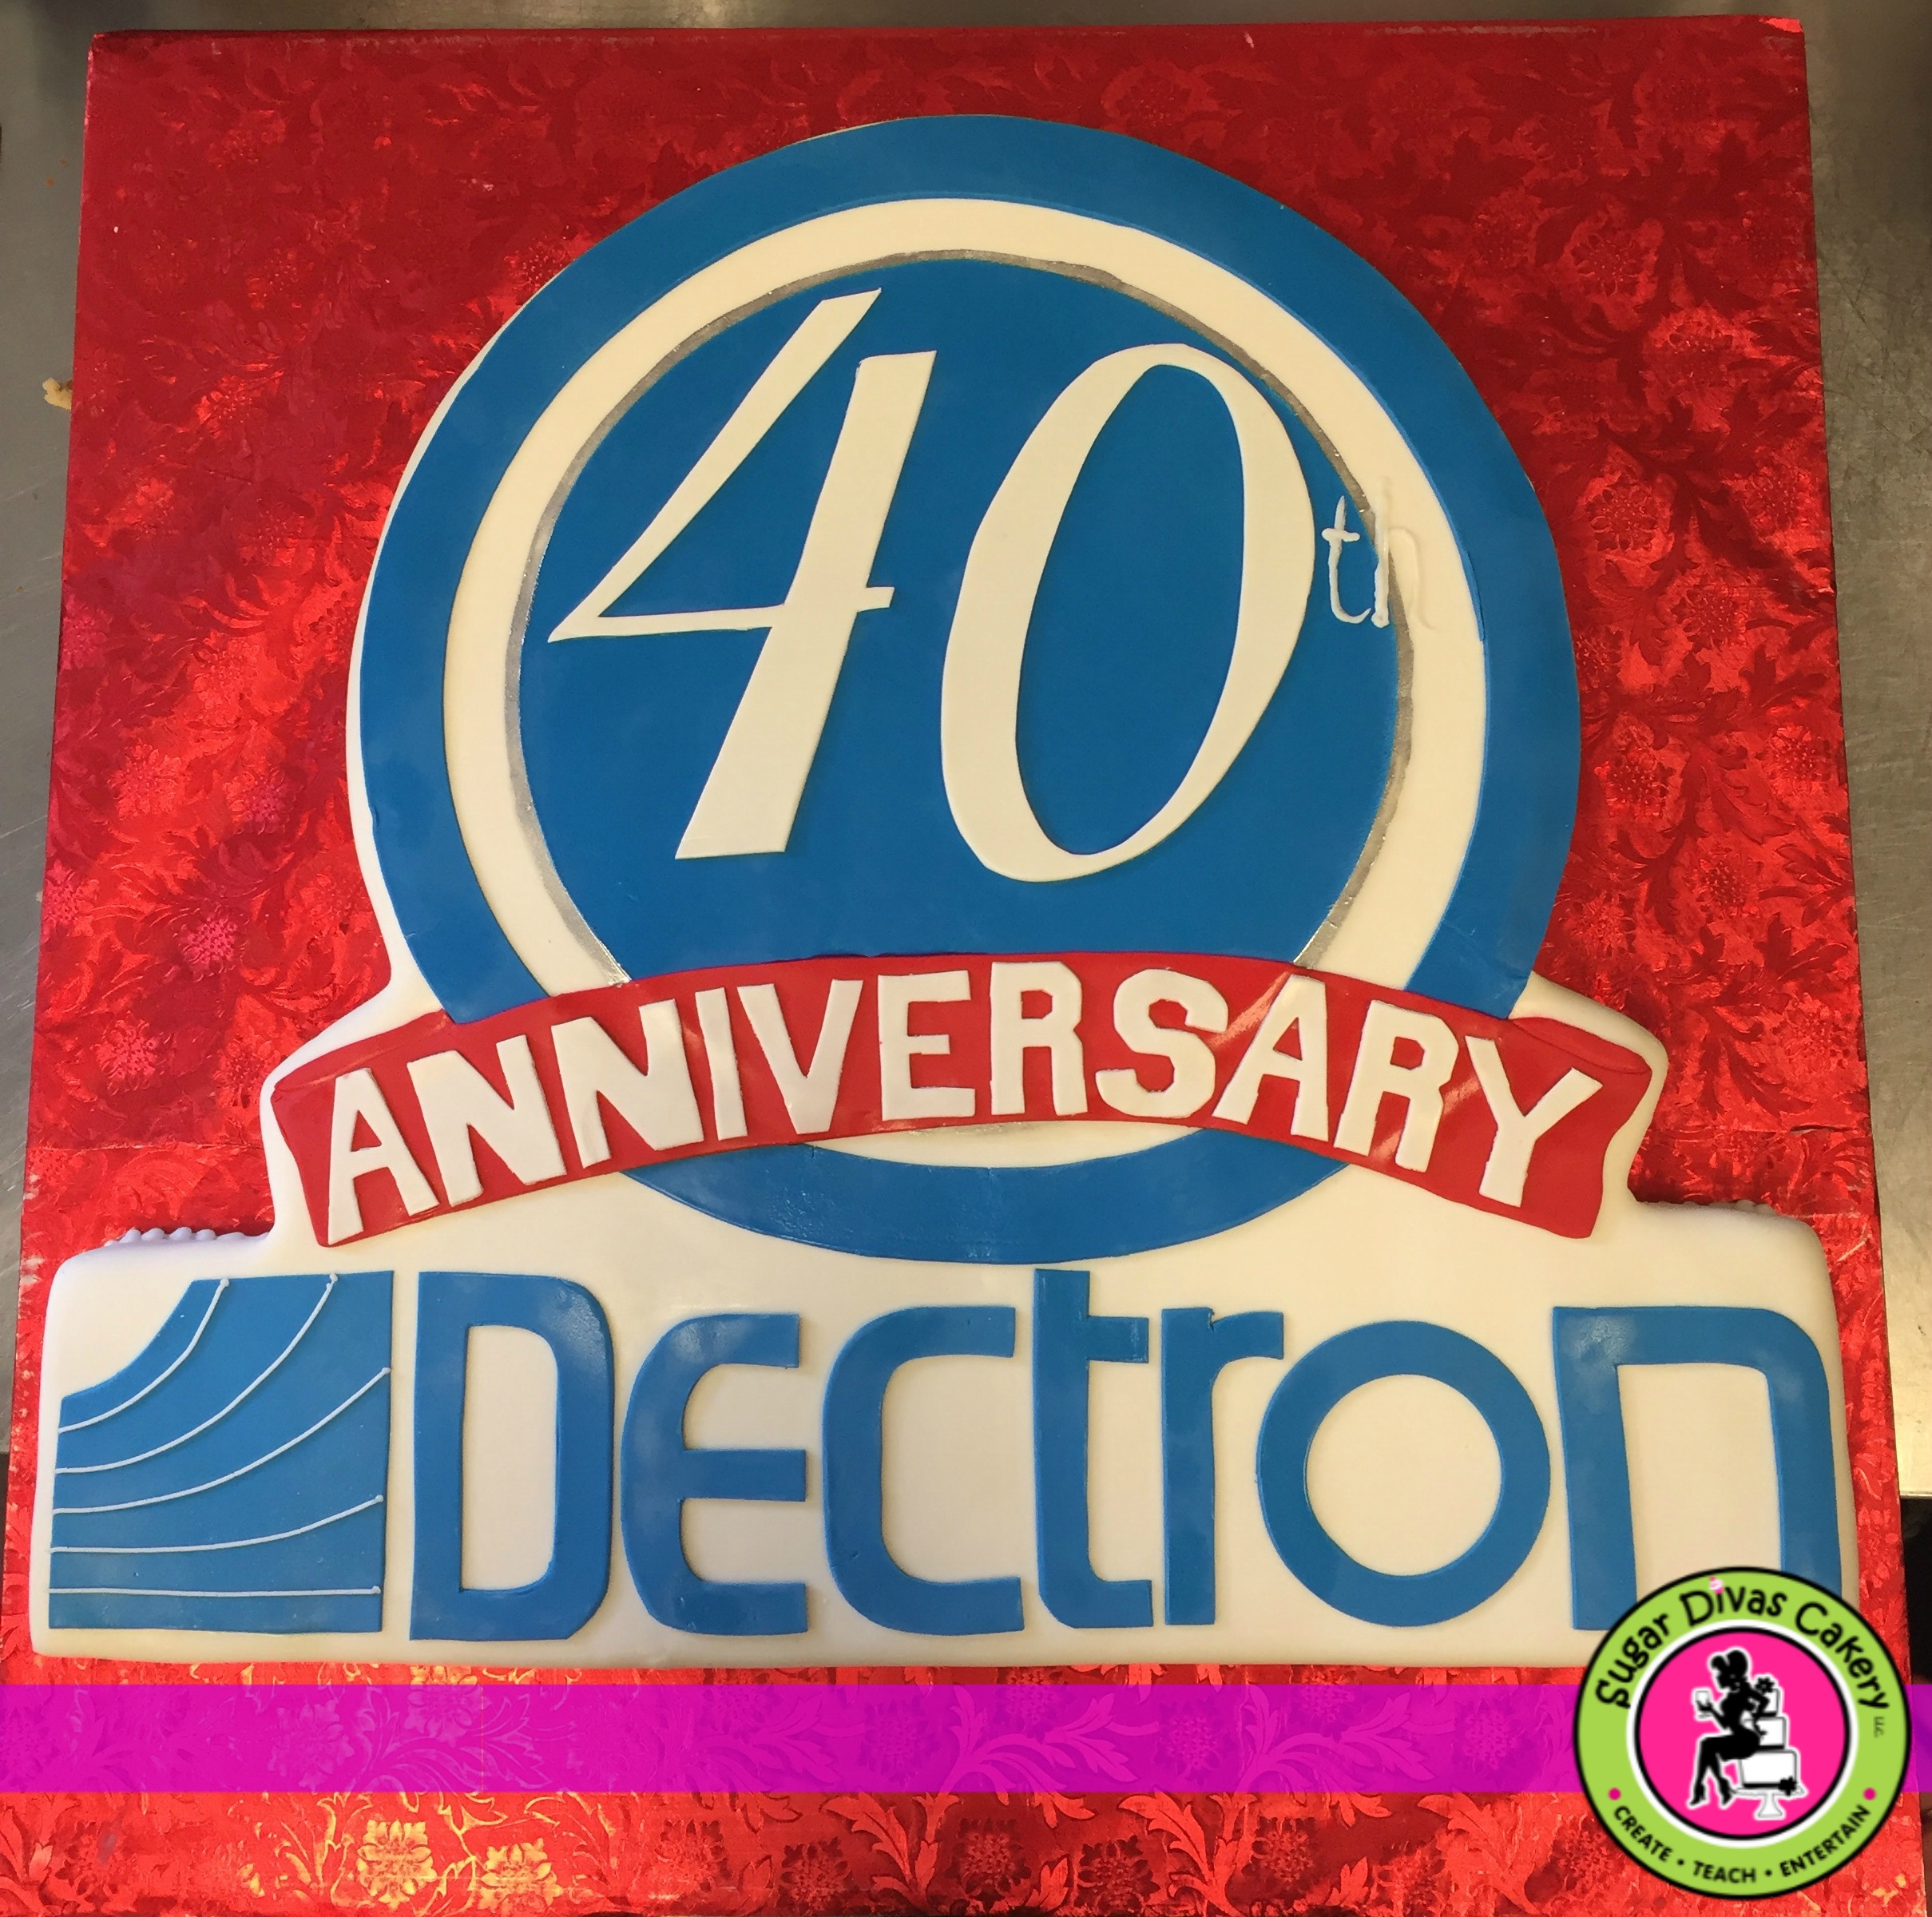 Dectron 40th